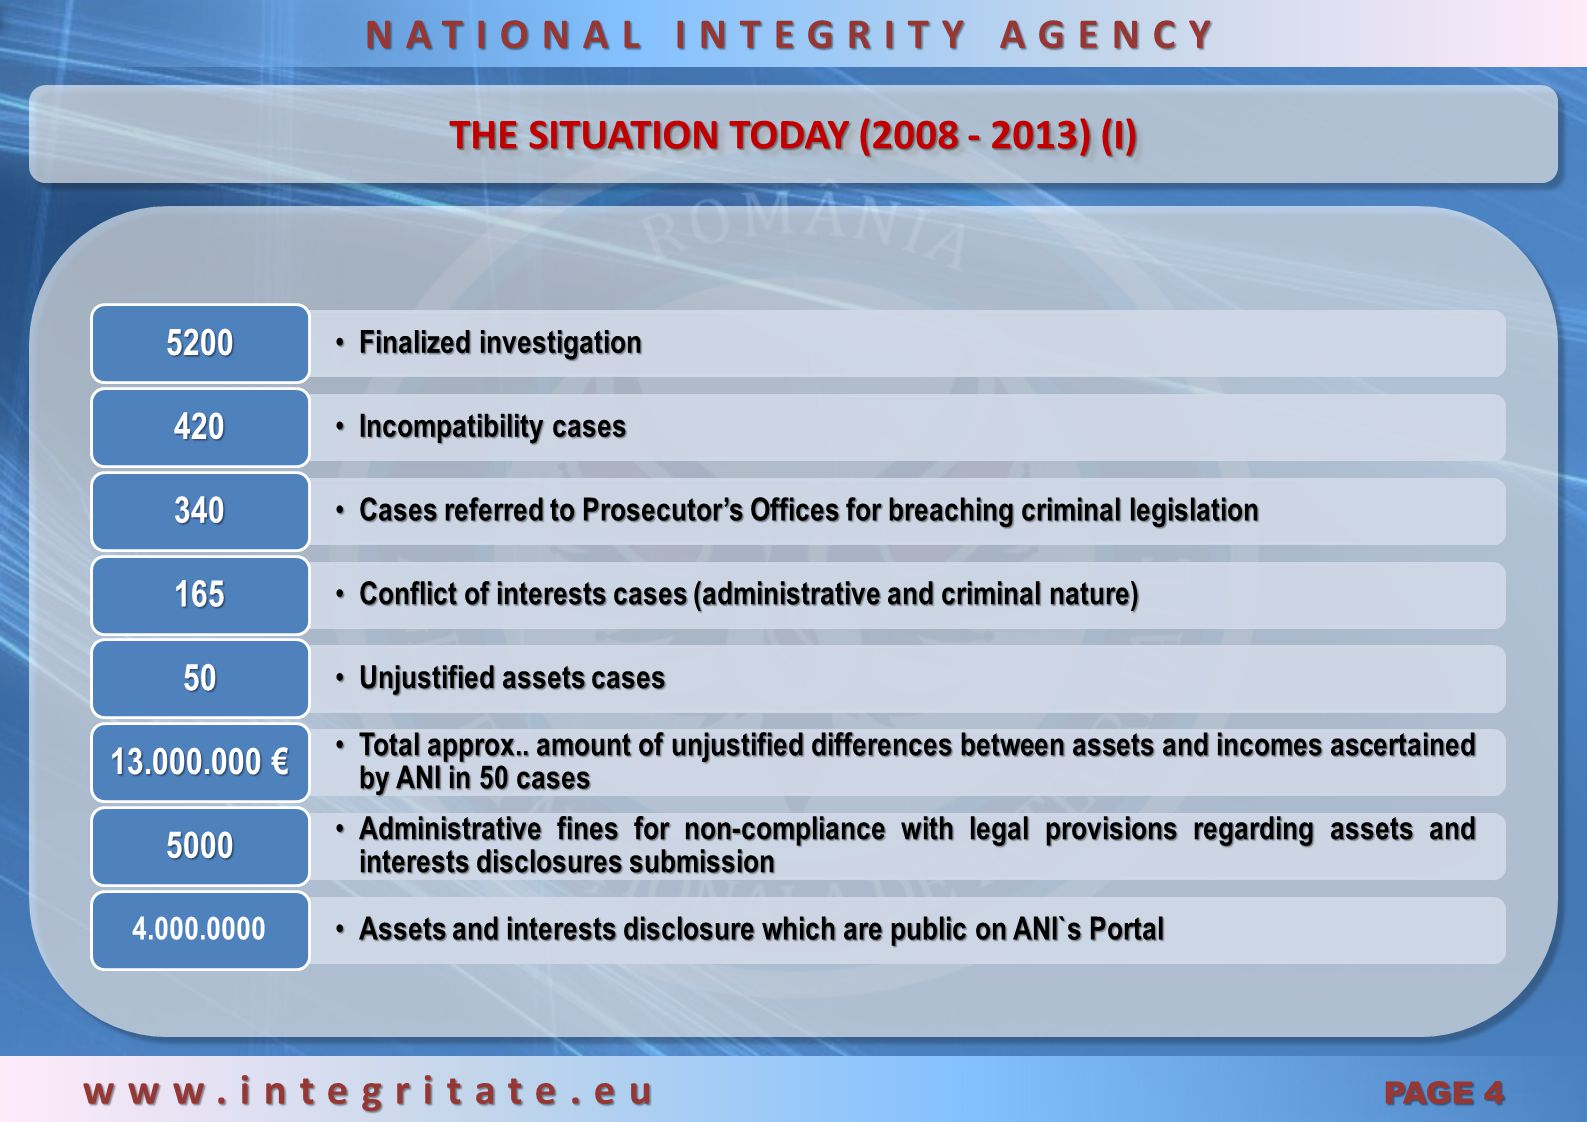 SITUATION BEFORE ESTABLISHING THE NATIONAL INTEGRITY AGENCY (1996 - 2007) www.integritate.eu PAGE 3 NATIONAL INTEGRITY AGENCY  In Romania, in the las